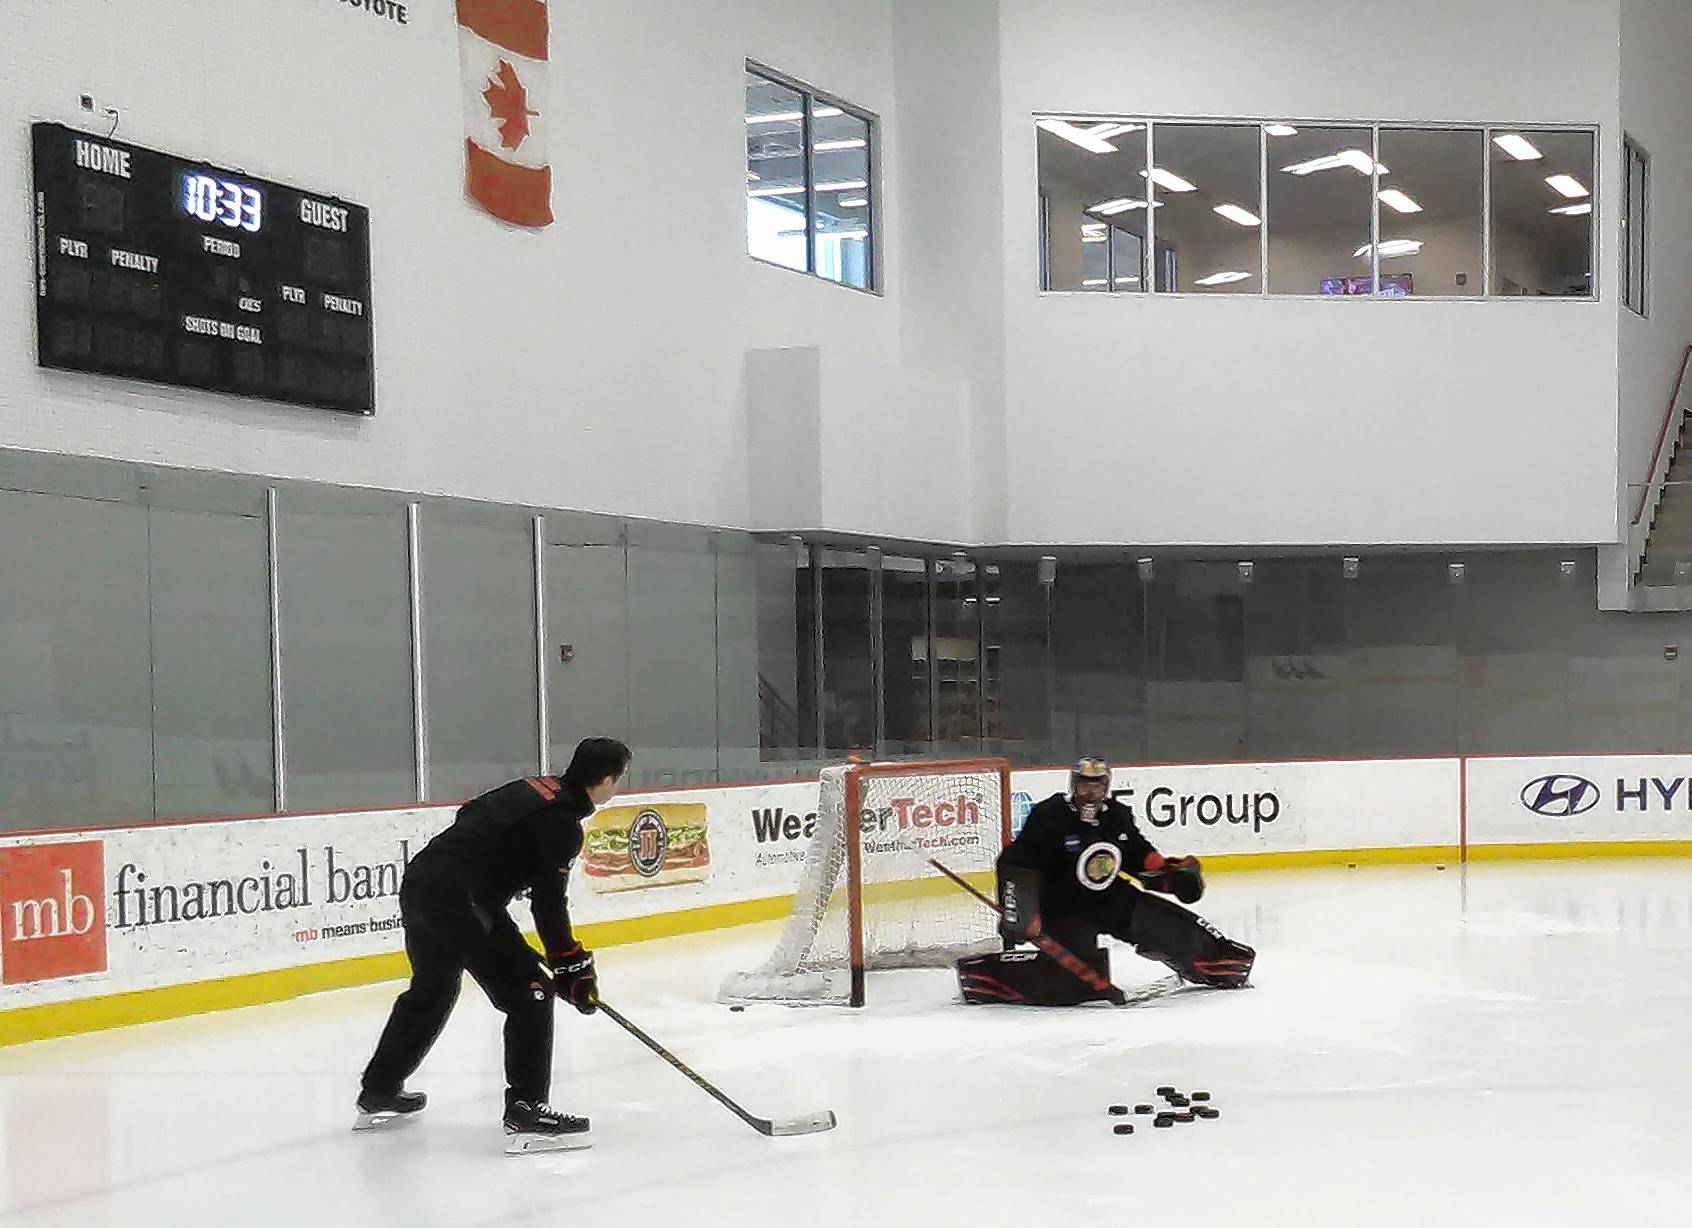 Blackhawks goalie Corey Crawford, who hasn't played a game since Dec. 23, was back on the ice early Monday morning for another workout with coach Jimmy Waite.